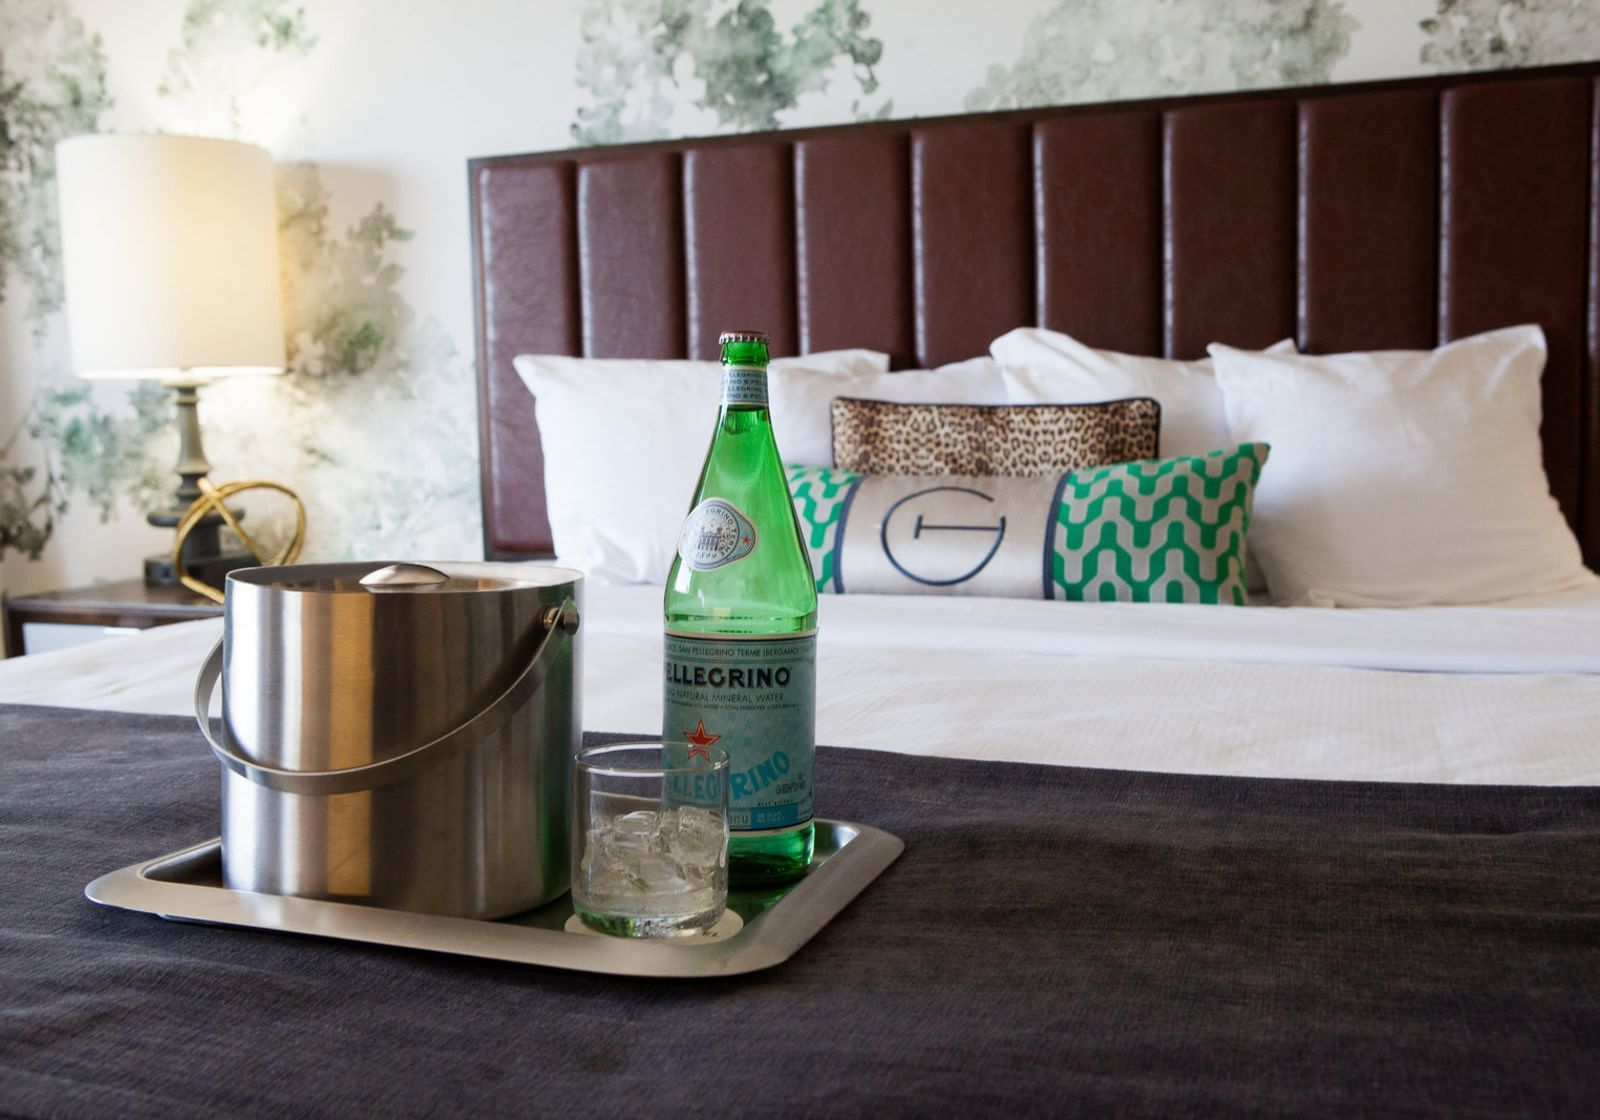 a bottle of sparkling water on a hotel bed